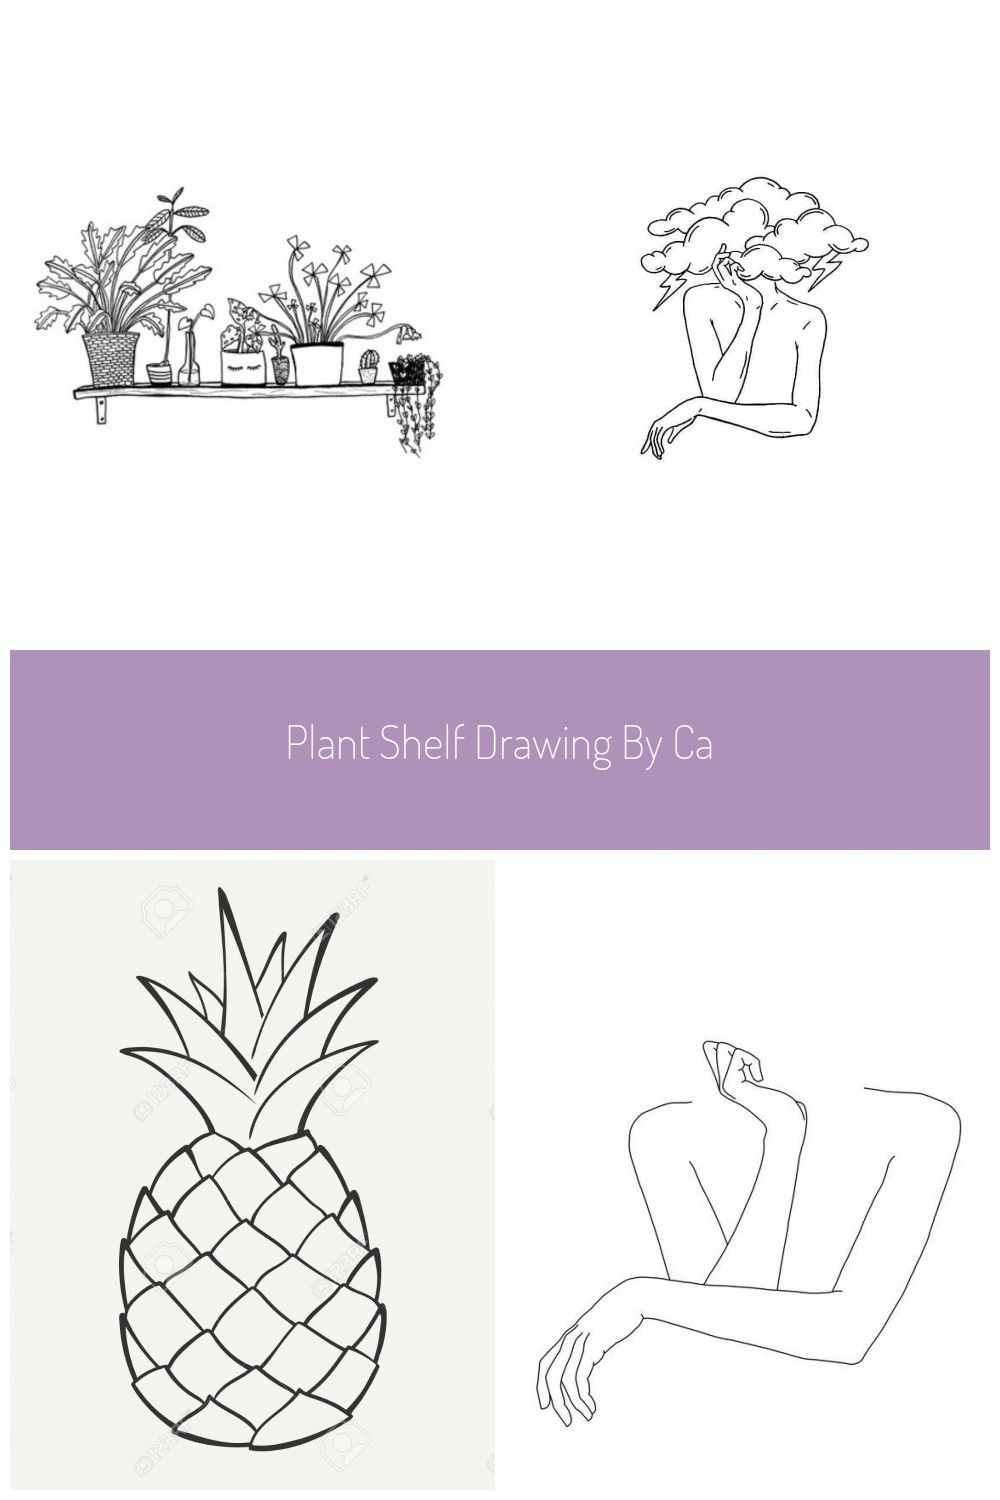 Plant shelf drawing by Carissa Tanton Available as a print on Etsy Botanical illustration Black and white line drawing Crazy plant lady black and white House Plant Shelfi...